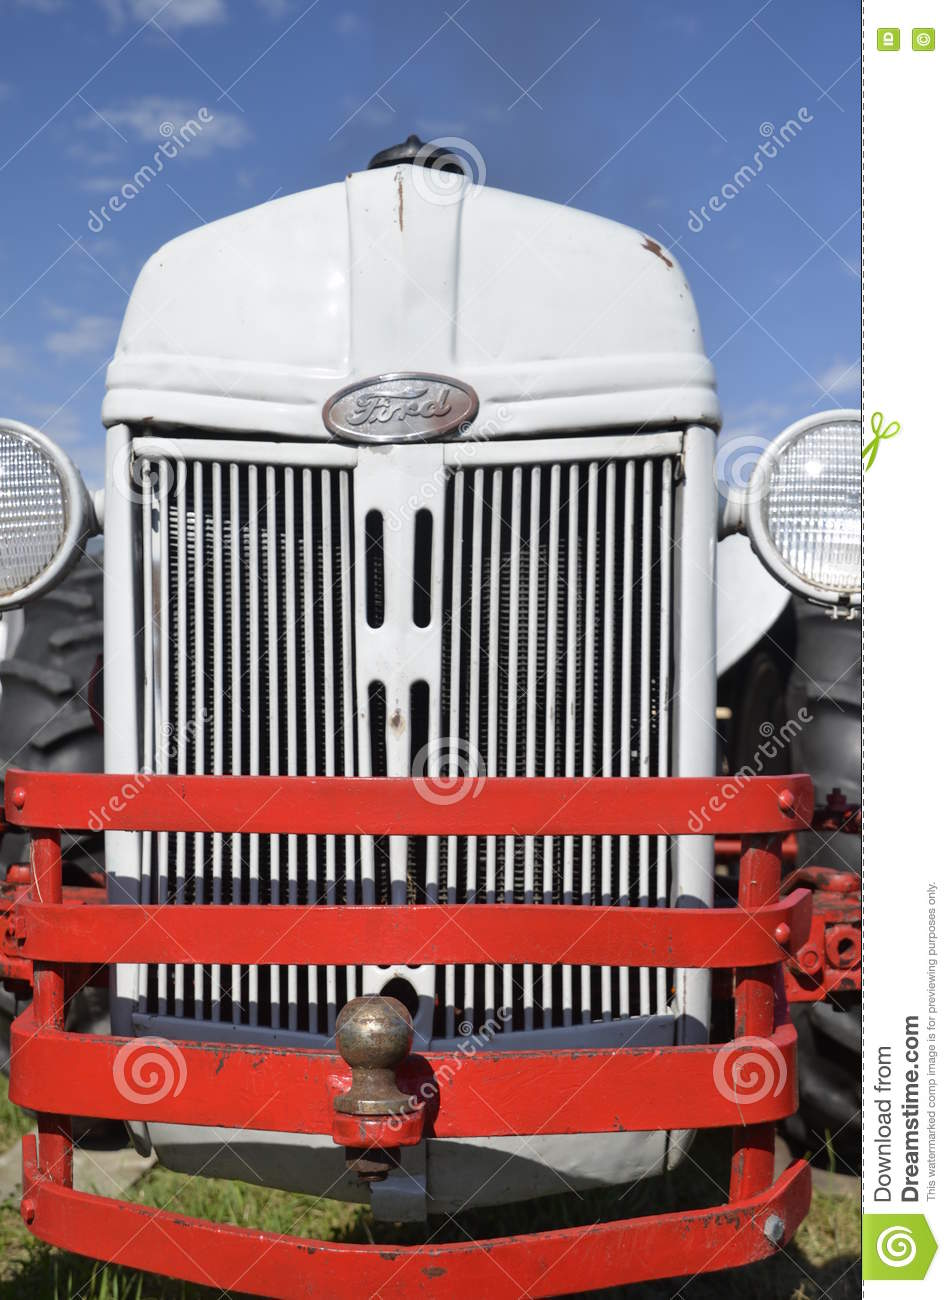 Ford Tractor Grill Guard : Old ford tractor with grill guards editorial photography